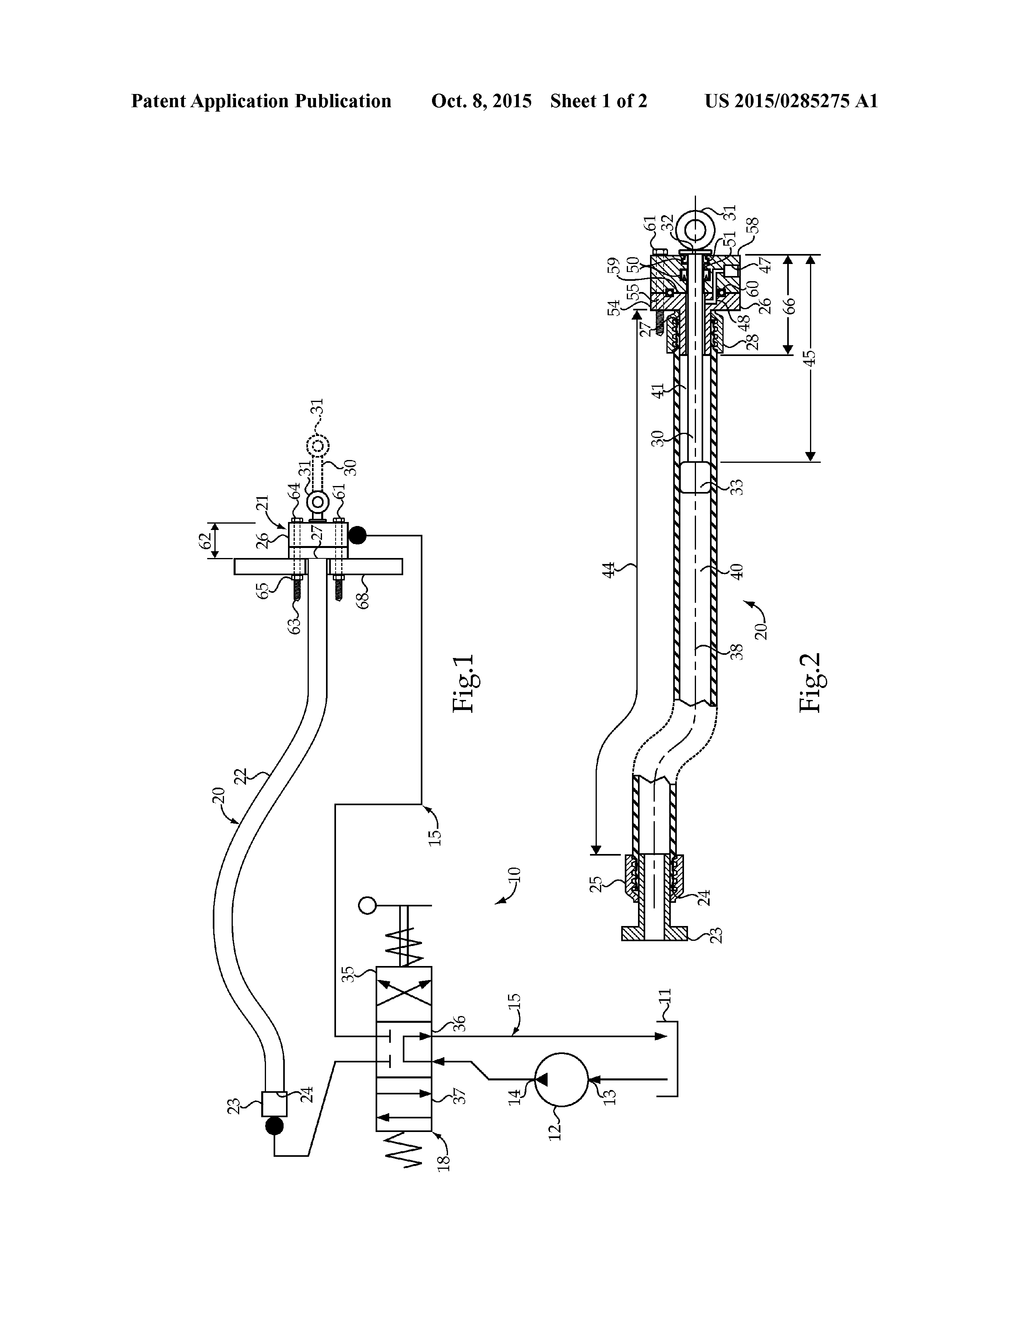 HYDRAULIC LINEAR ACTUATOR INTEGRATED INTO A FLEXIBLE HOSE